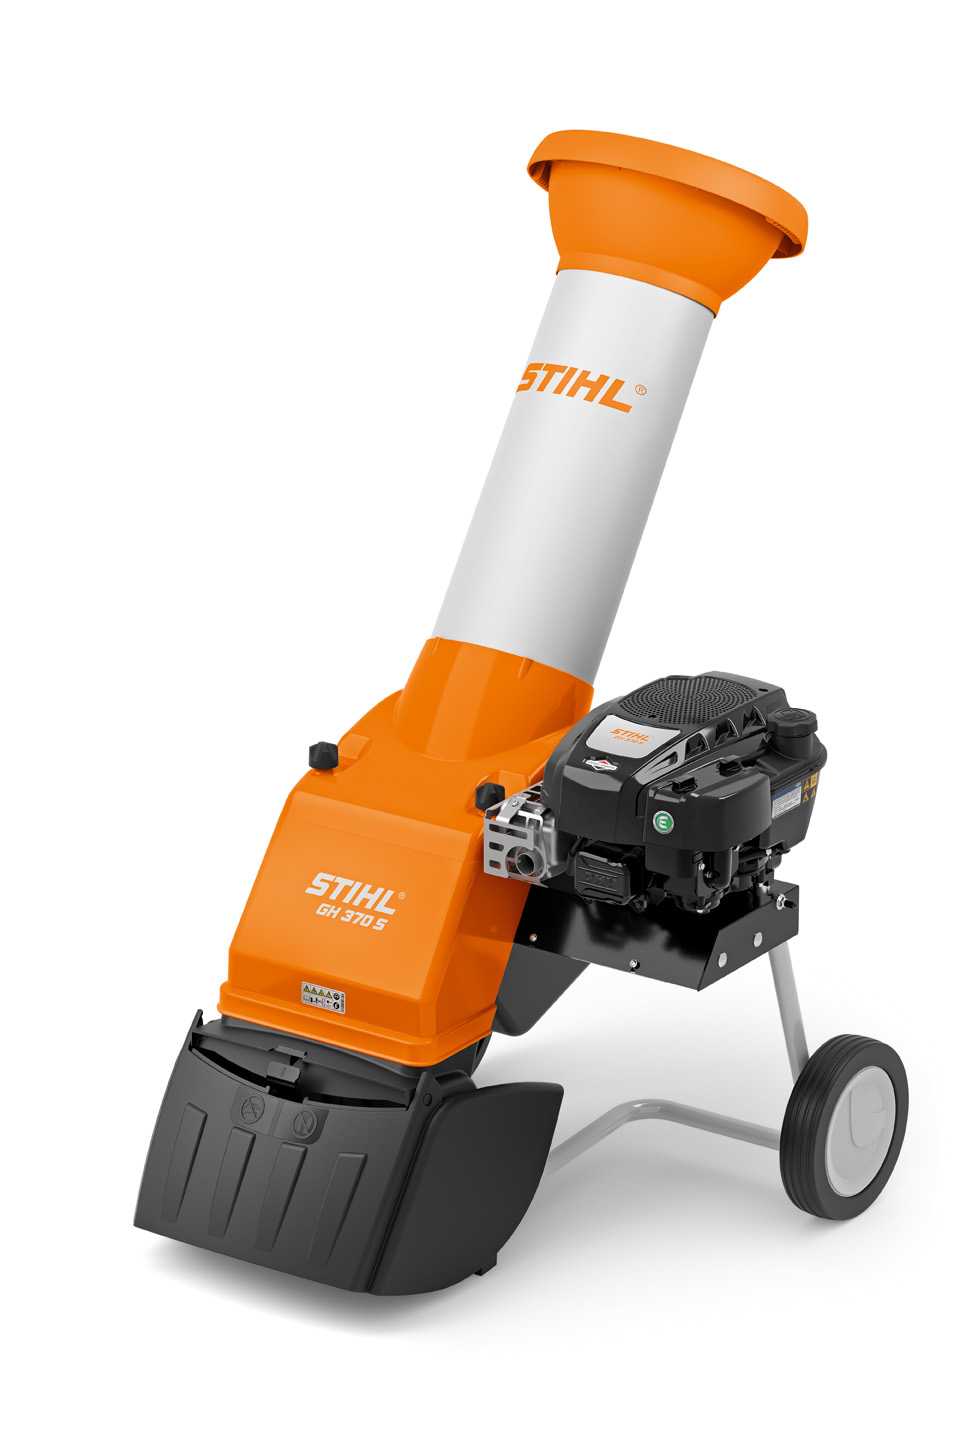 GH 370 S - POWERFUL PETROL CHIPPER FOR MOBILE USE AROUND THE GARDEN